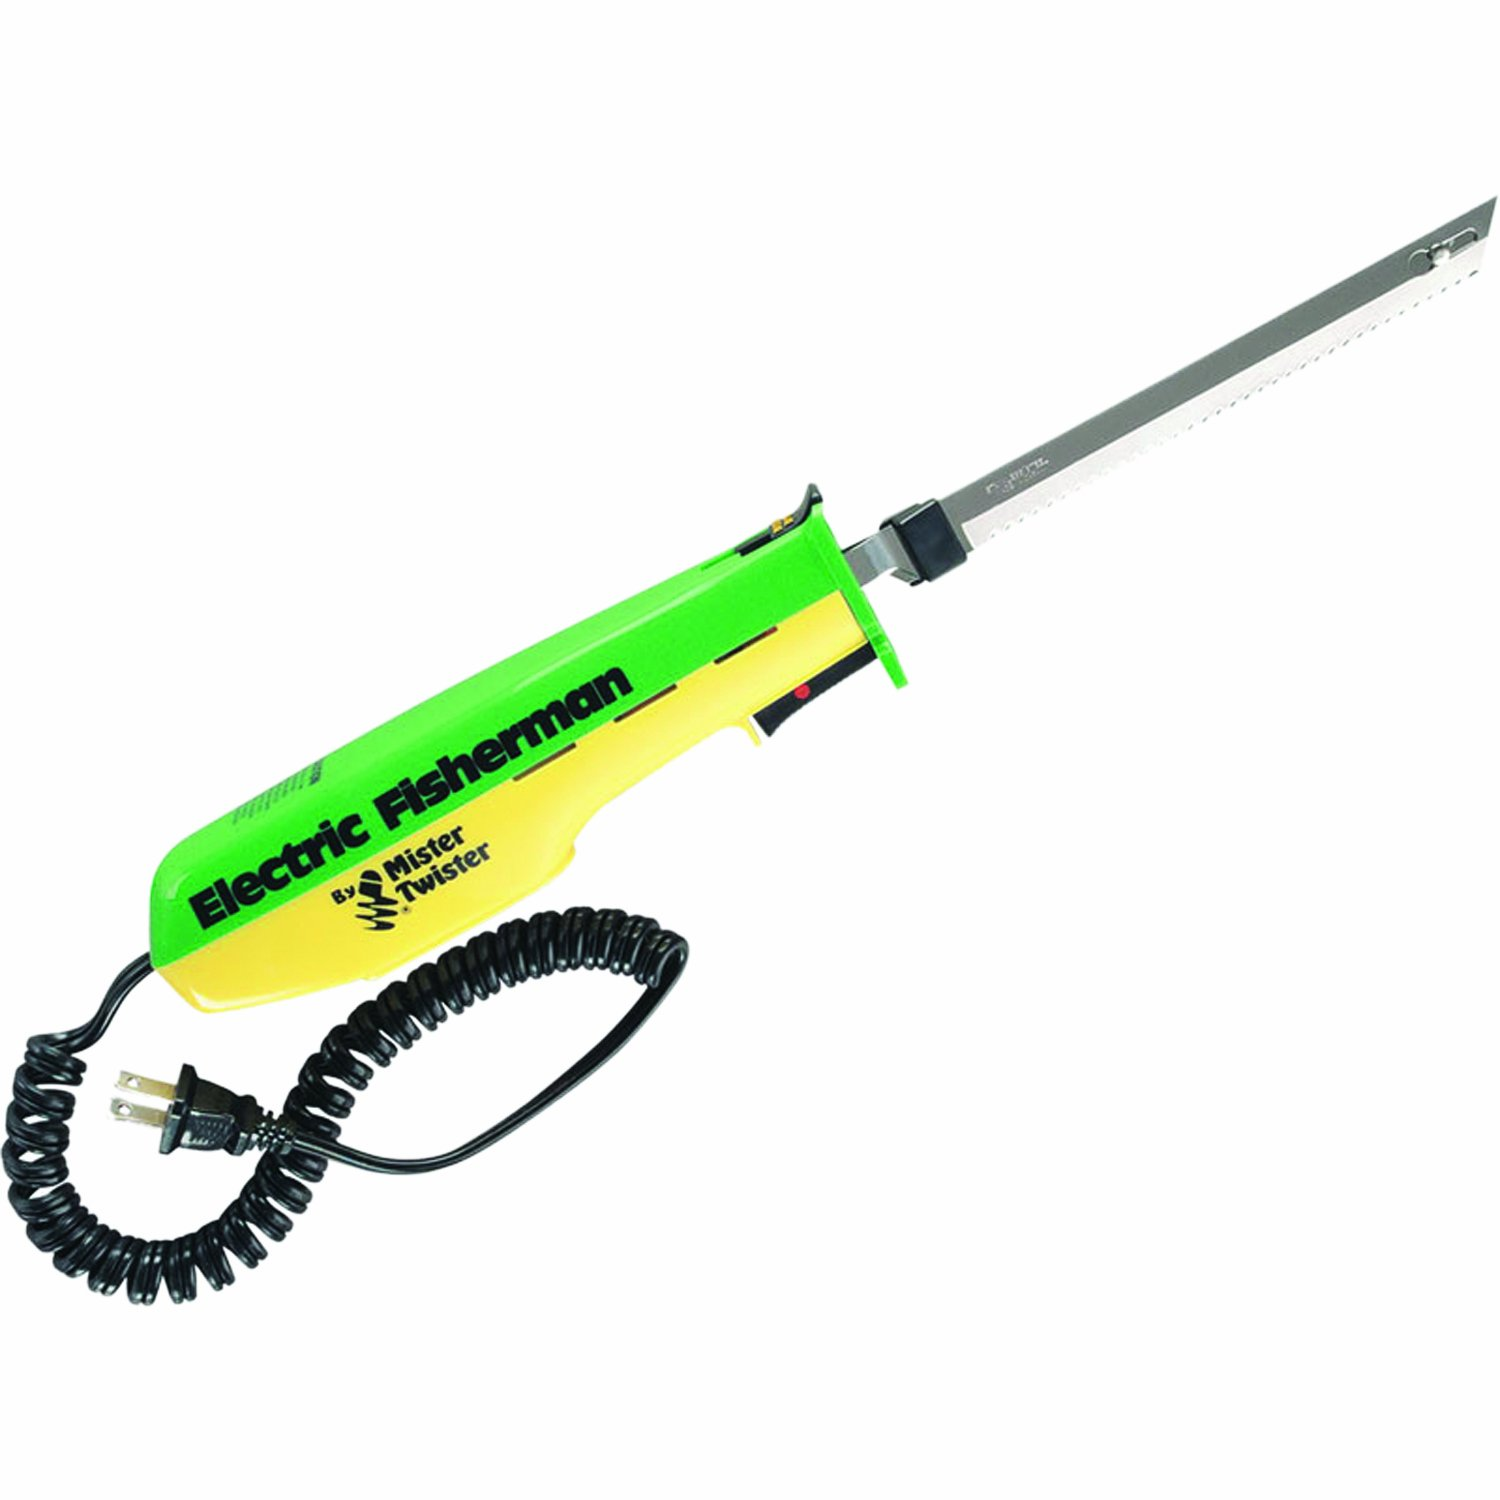 Electric Fishing Knife Reviews